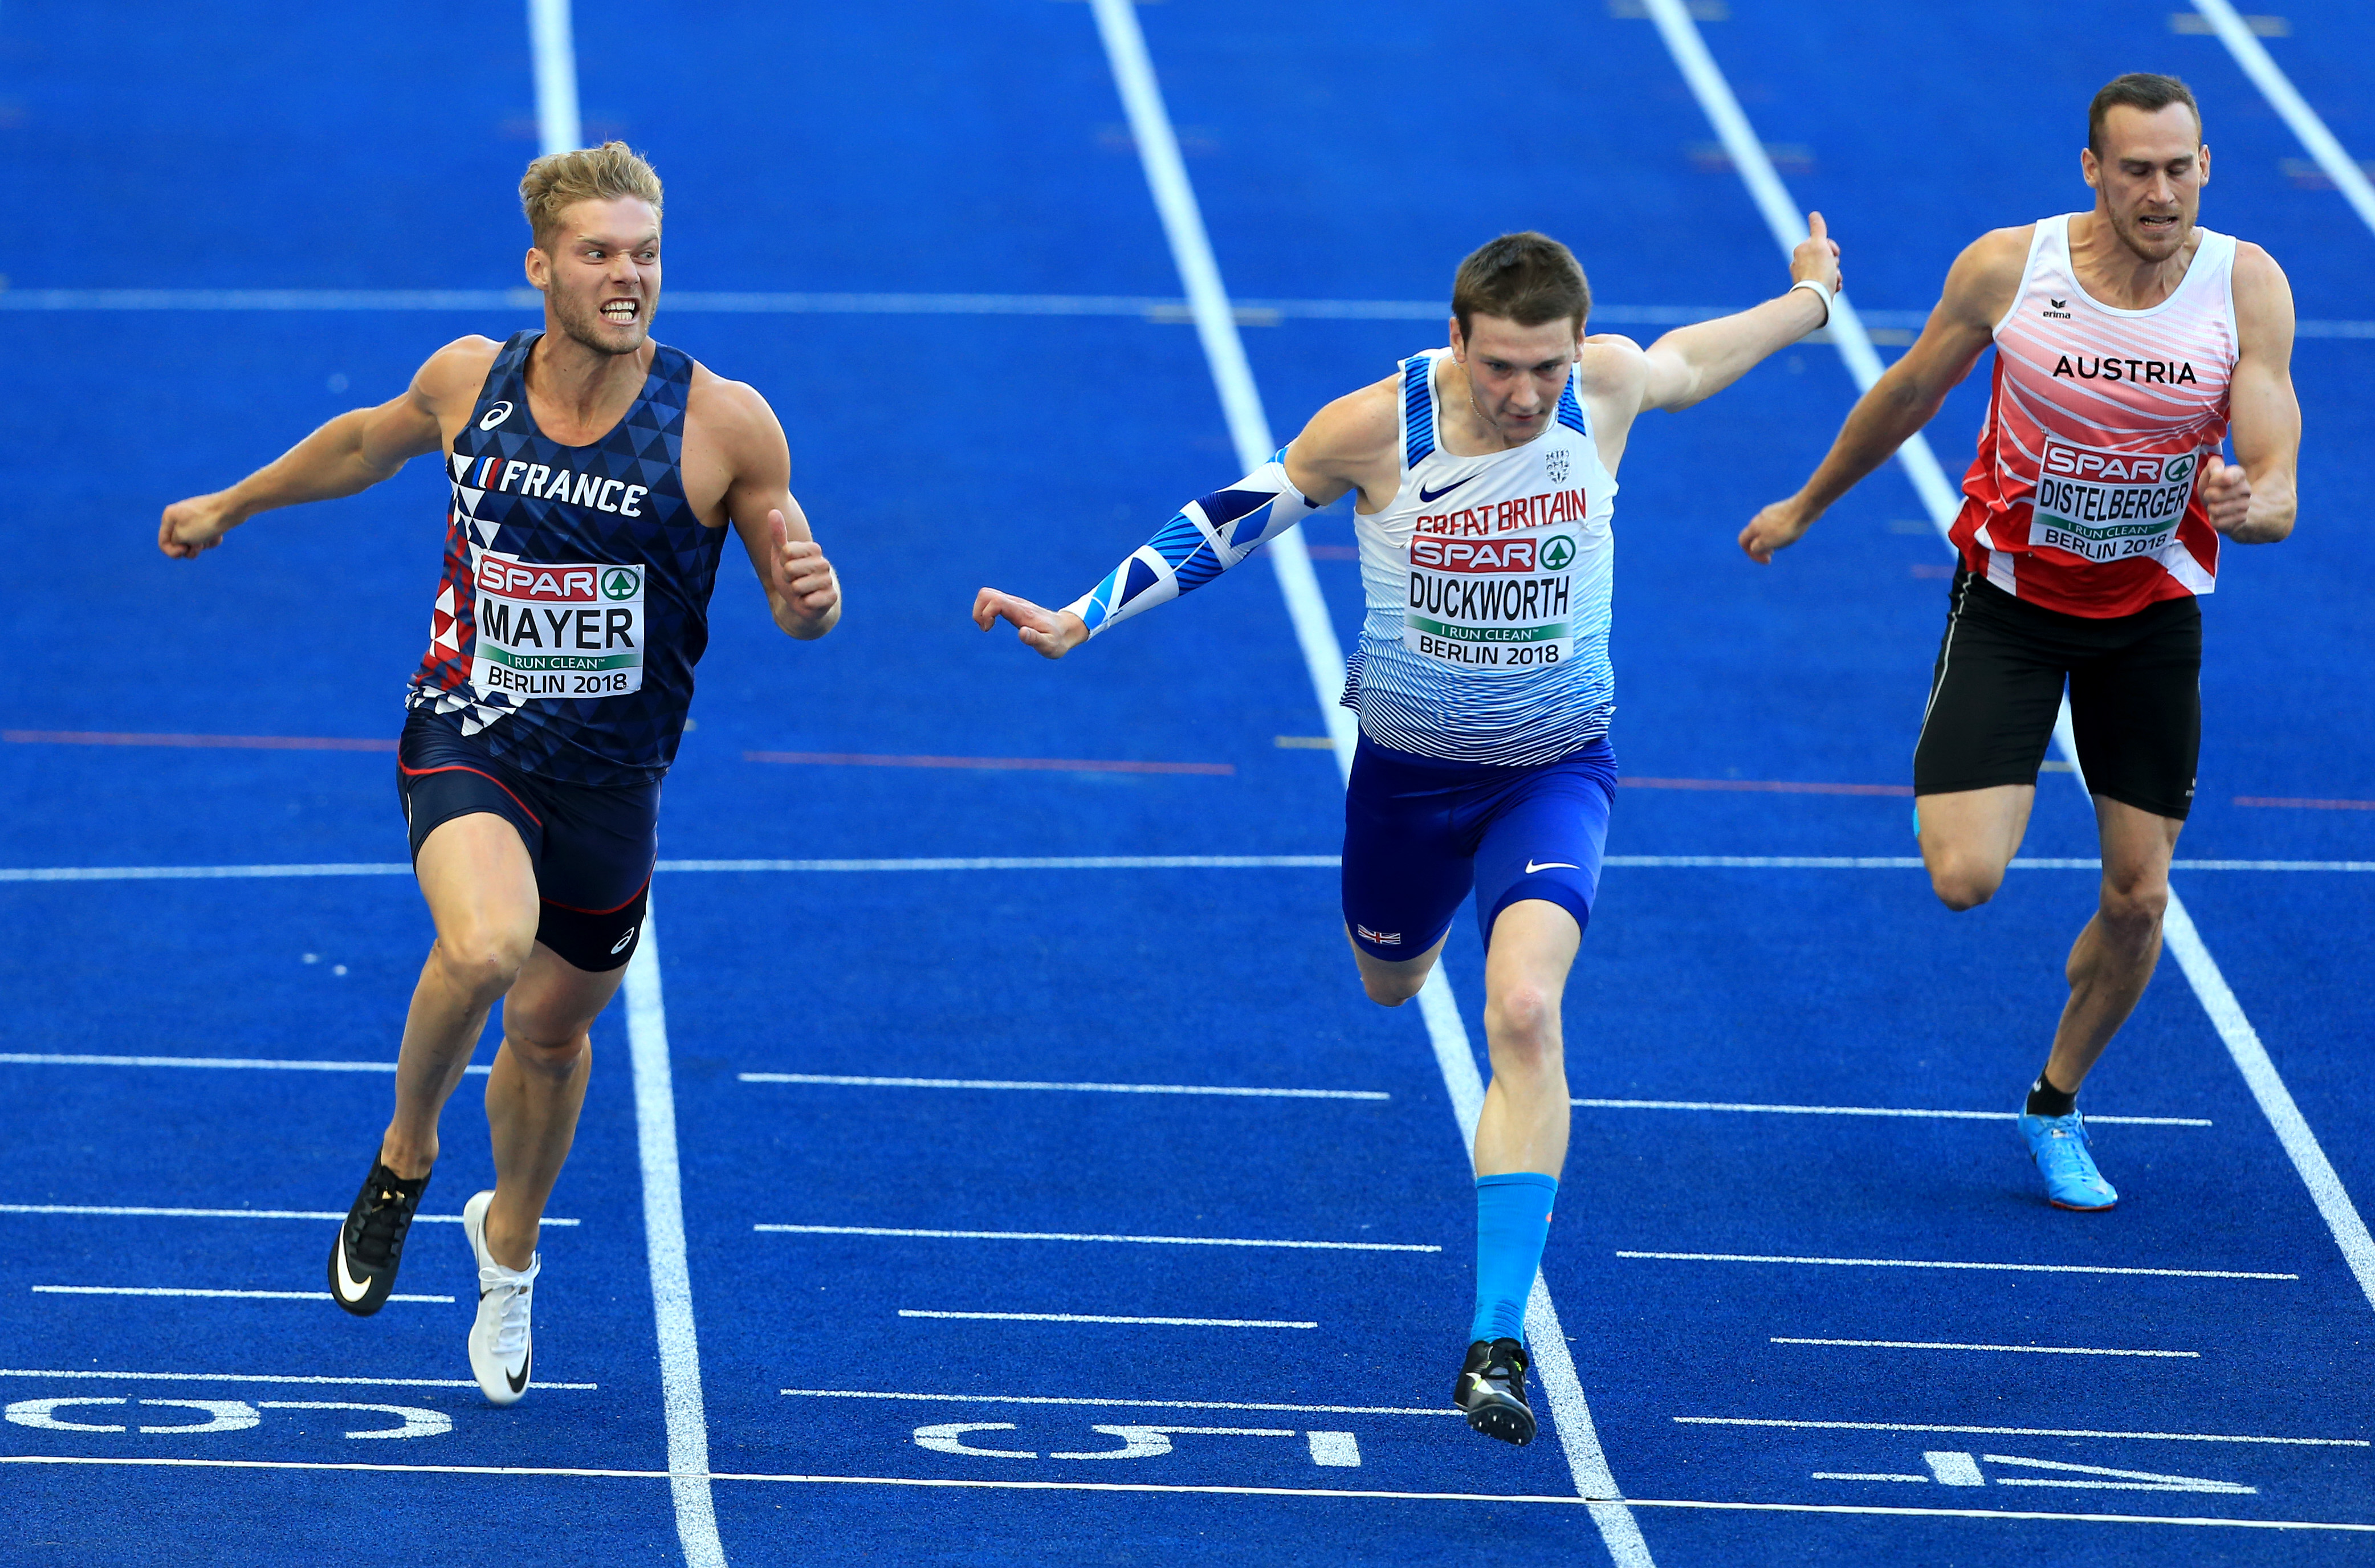 Five big names who could challenge at the European Athletics Indoor Championship in Glasgow